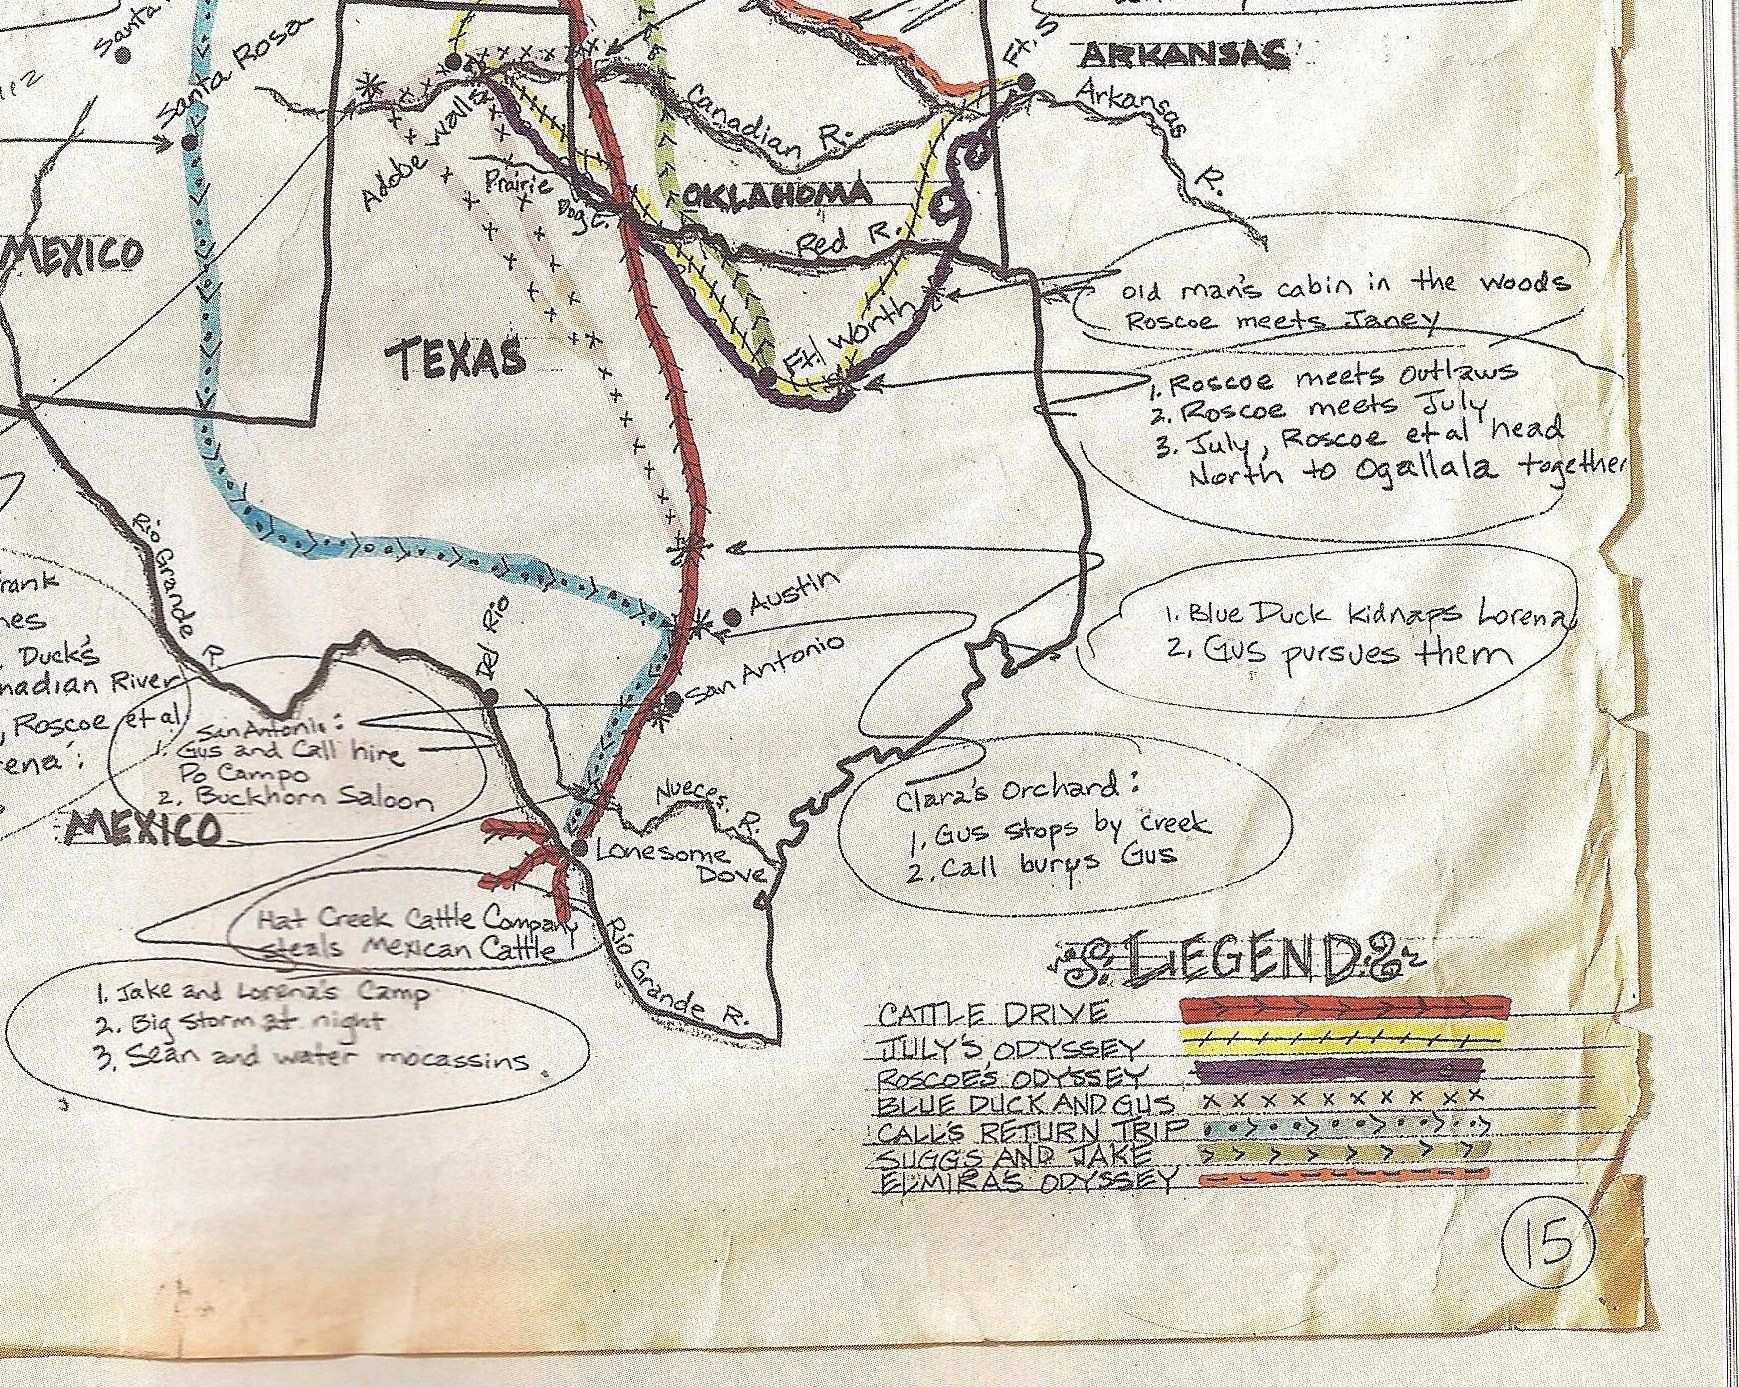 Copy of larry mcmurtrys cattle drive route map with his